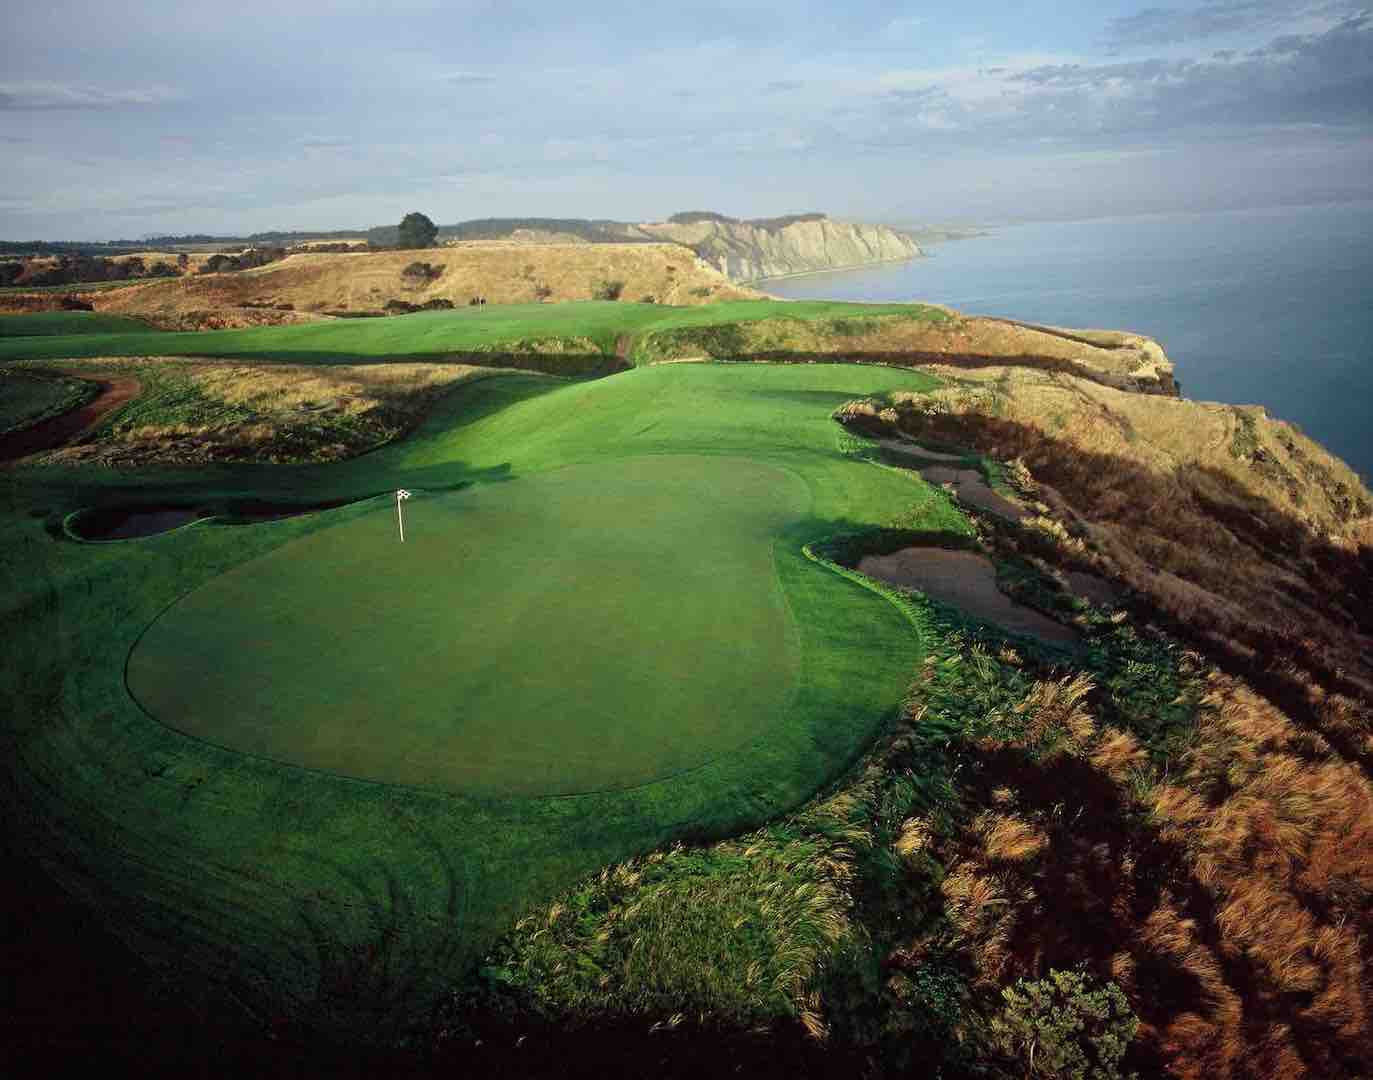 GolfPorn central - it's Cape Kidnappers